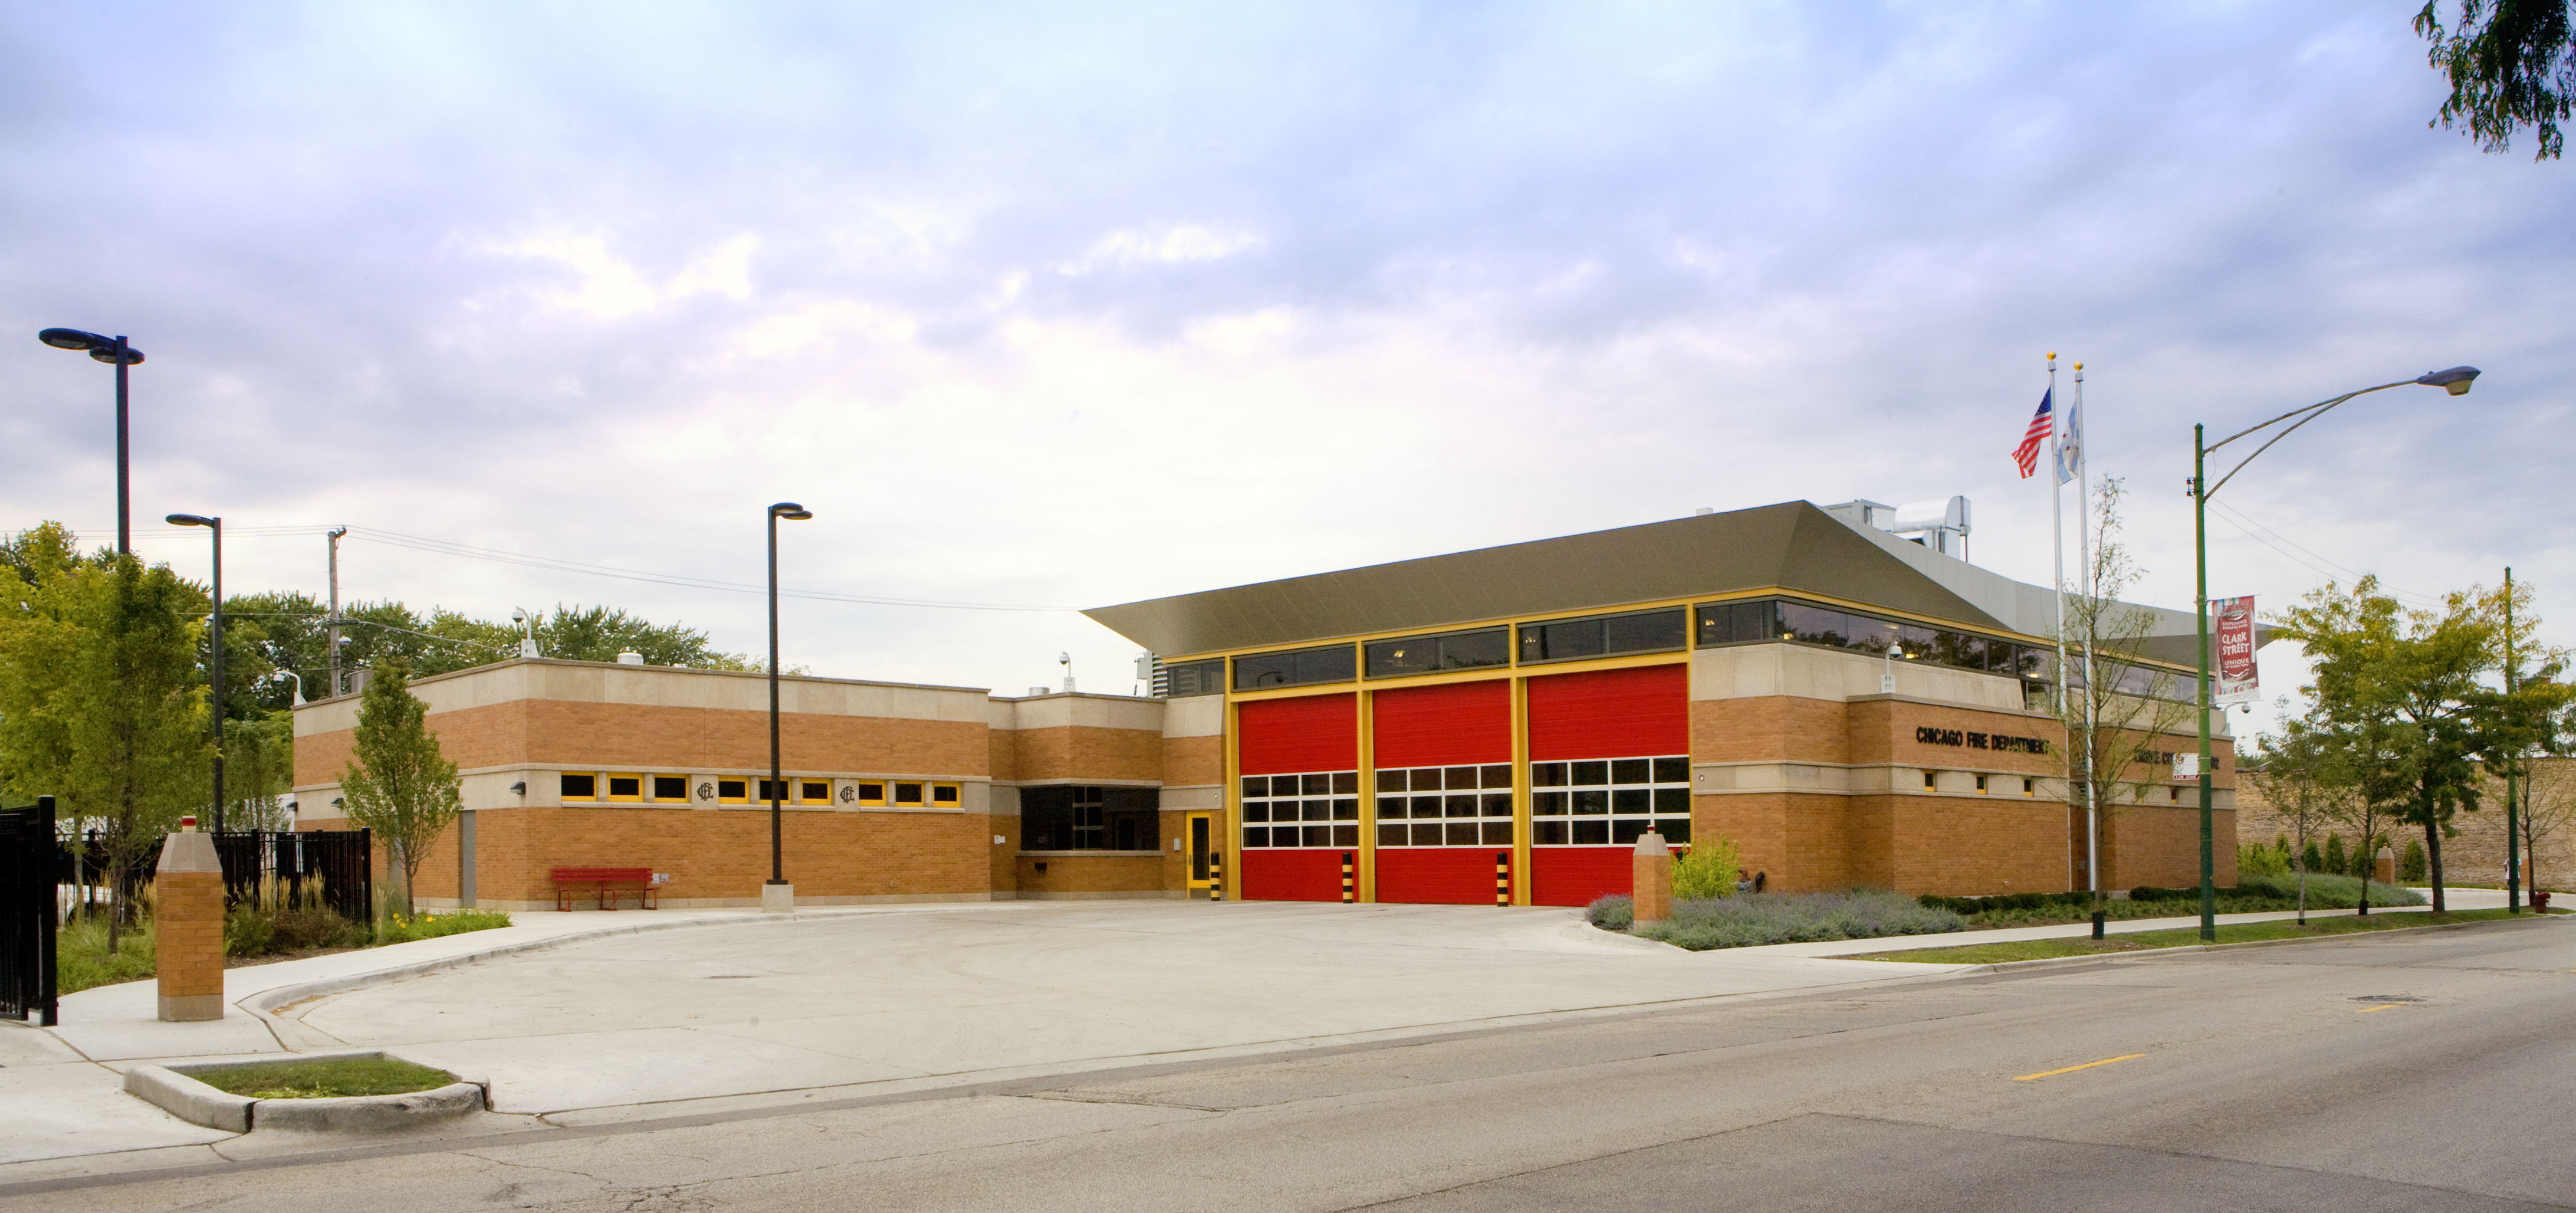 Chicago Fire Department Engine 102's house